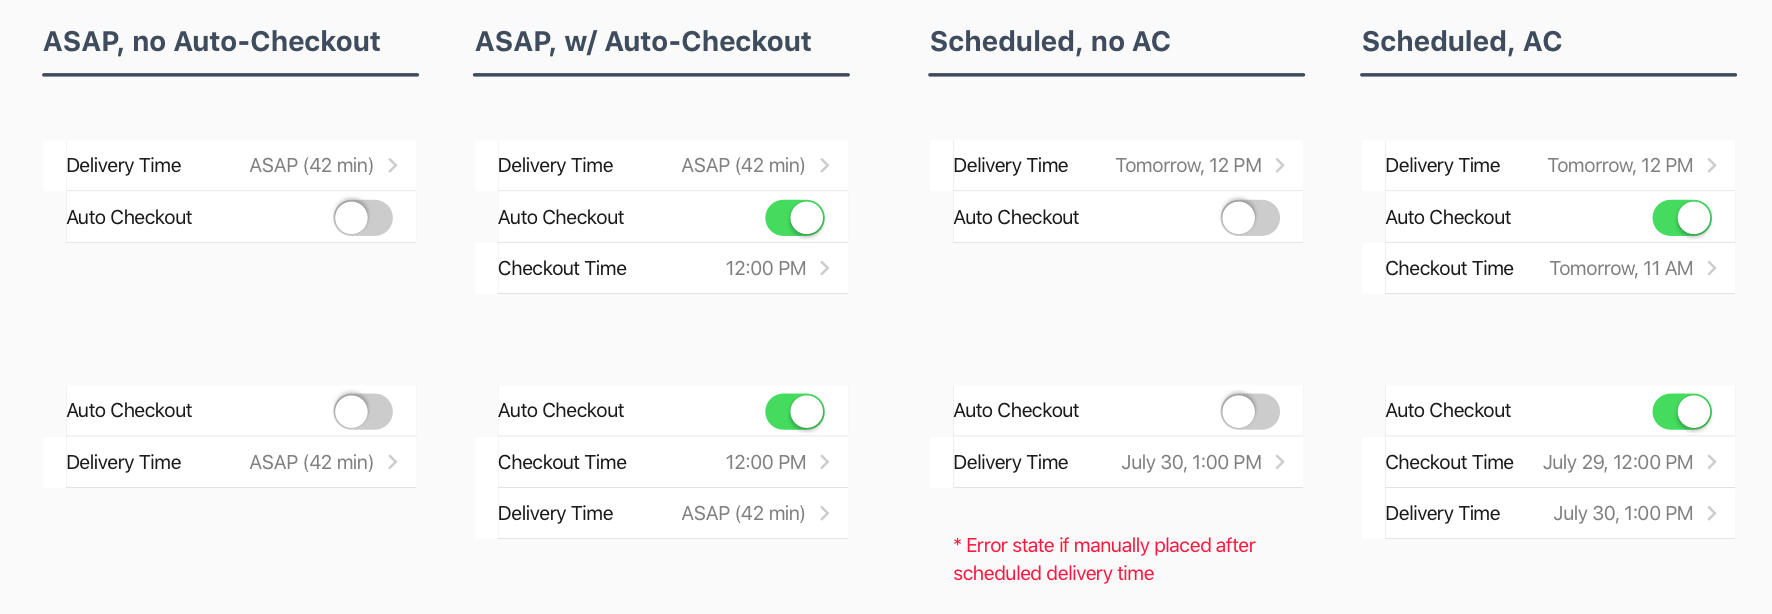 Different states and explorations for how ASAP/Scheduled deliveries could work with an Auto Checkout Time and Specified Delivery Time.